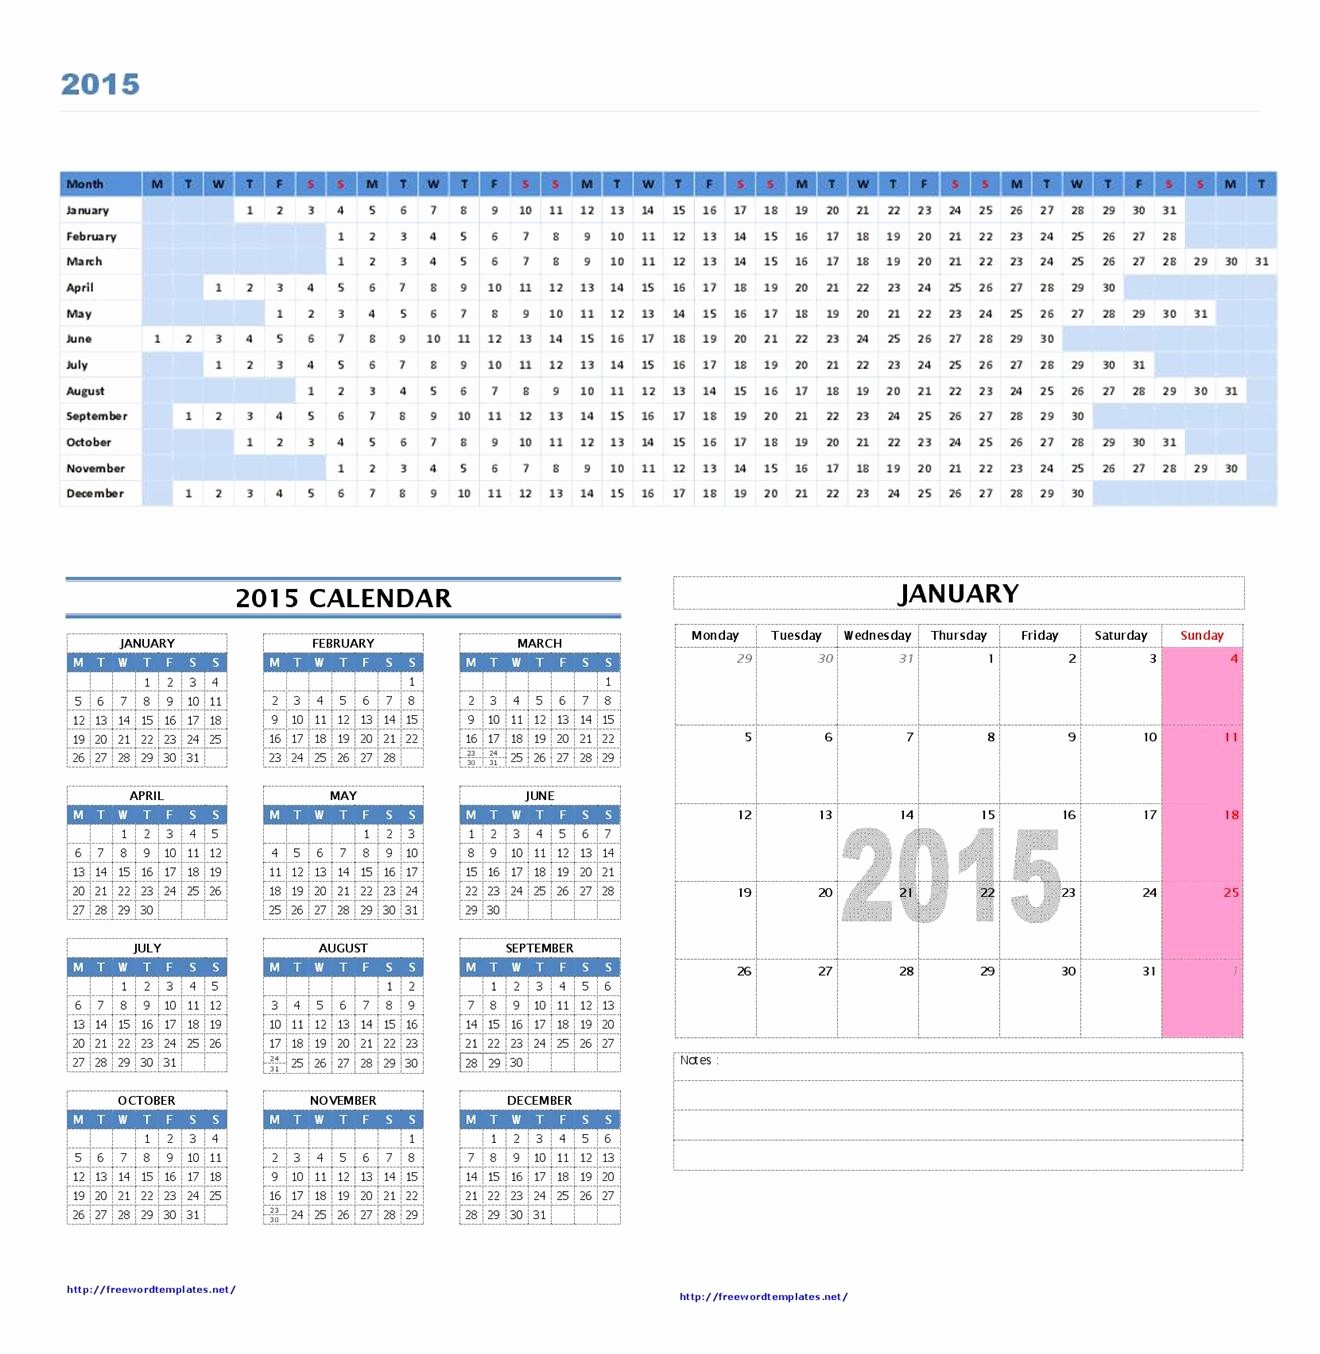 Calendar Of events Template 2015 Luxury 2015 Calendar Template Microsoft Word